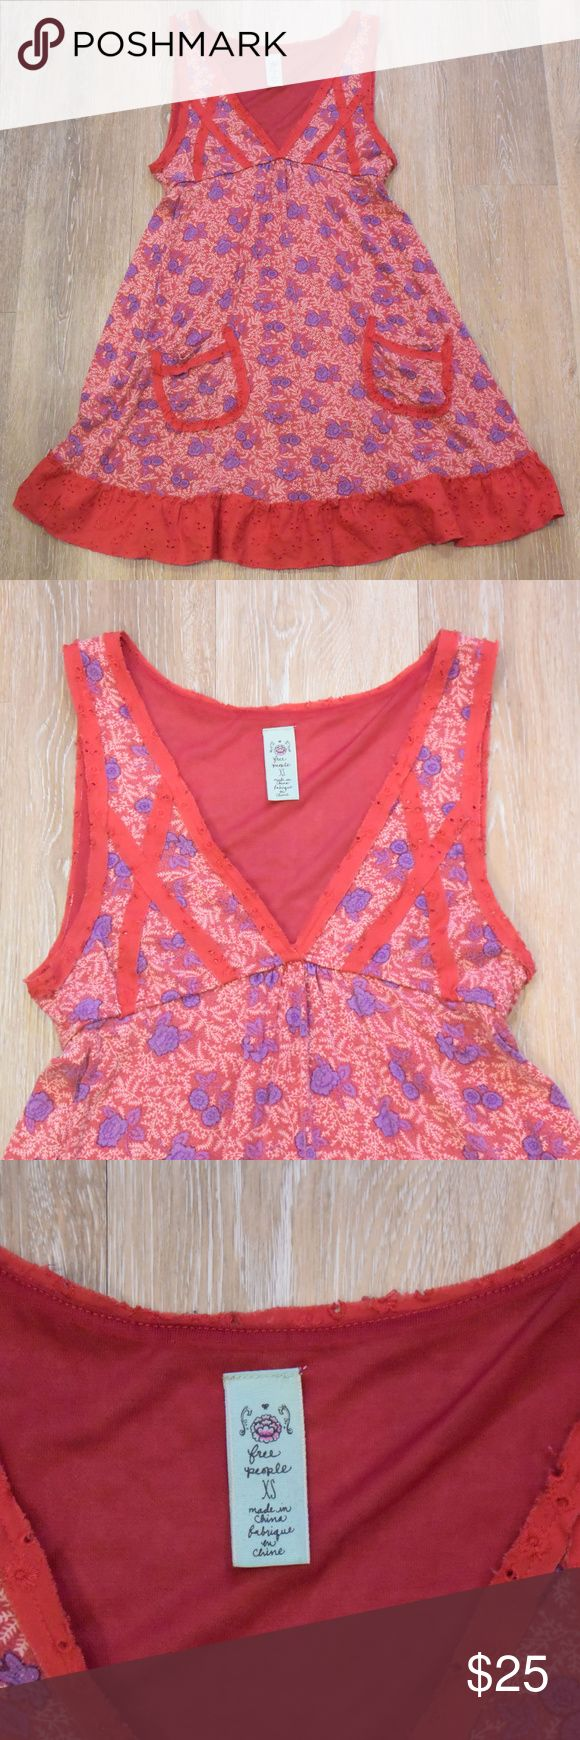 Free People Red Floral Jersey Dress XS Super sweet red floral print on this free people dress. sz XS. jersey is my favedress fabric! red eyelet cotton trim. 90% lyocell, 10% spandex. there is a bit of wash wear/fading, but still lots of life left! good shape with no stains, rips or holes  I consider all offers & love to bundle! Check out my (ever-growing) closet! Free People Dresses